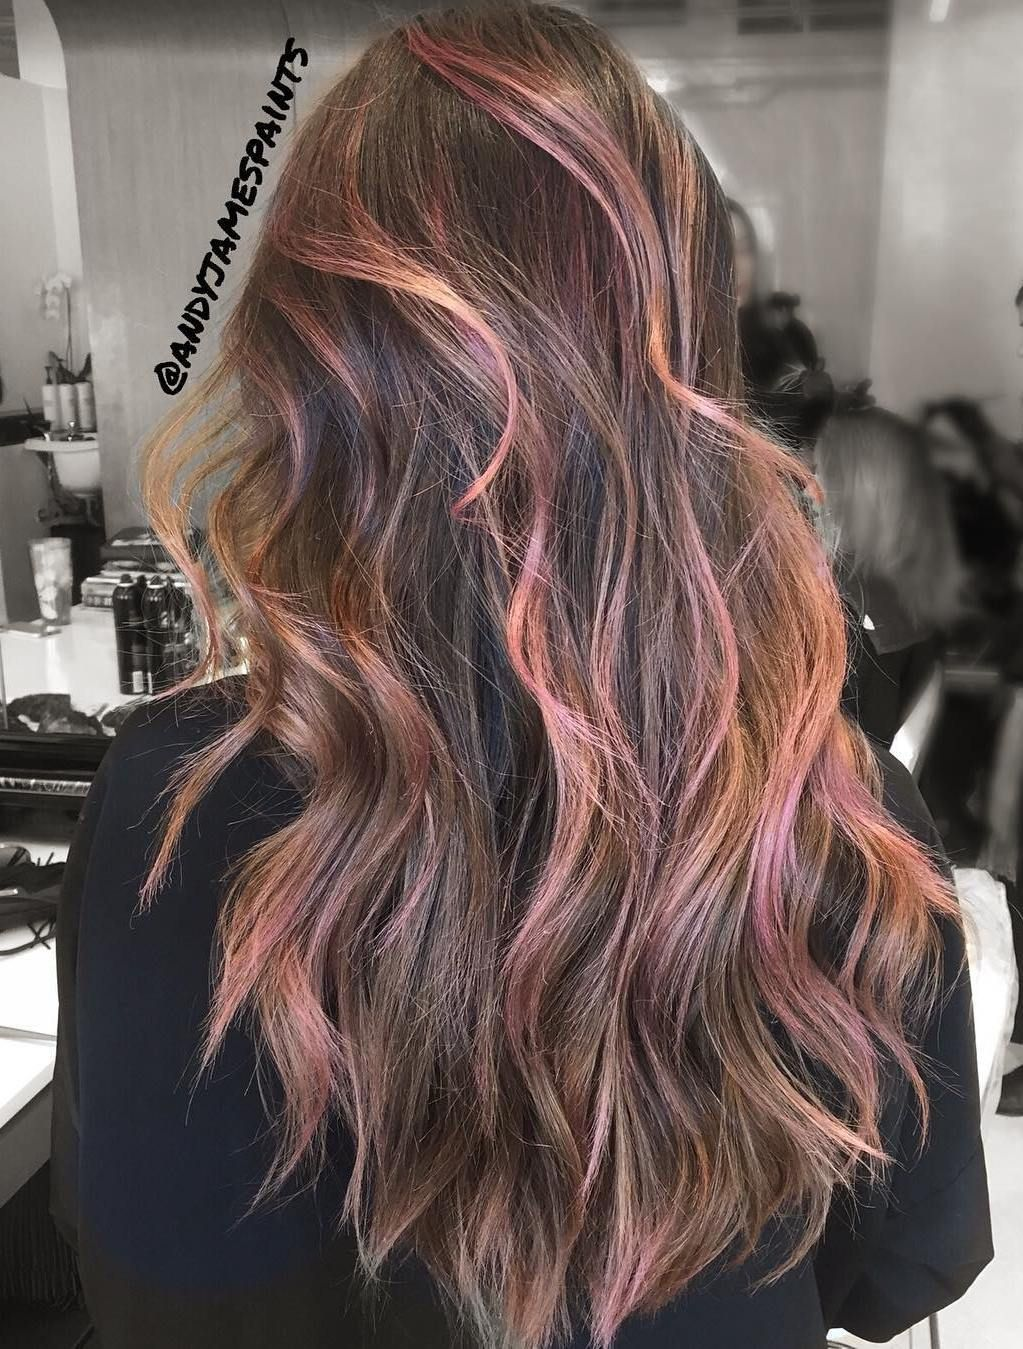 Long Brown Hair With Pink Highlights Brown Hair With Highlights Brown Hair With Highlights And Lowlights Brown And Pink Hair